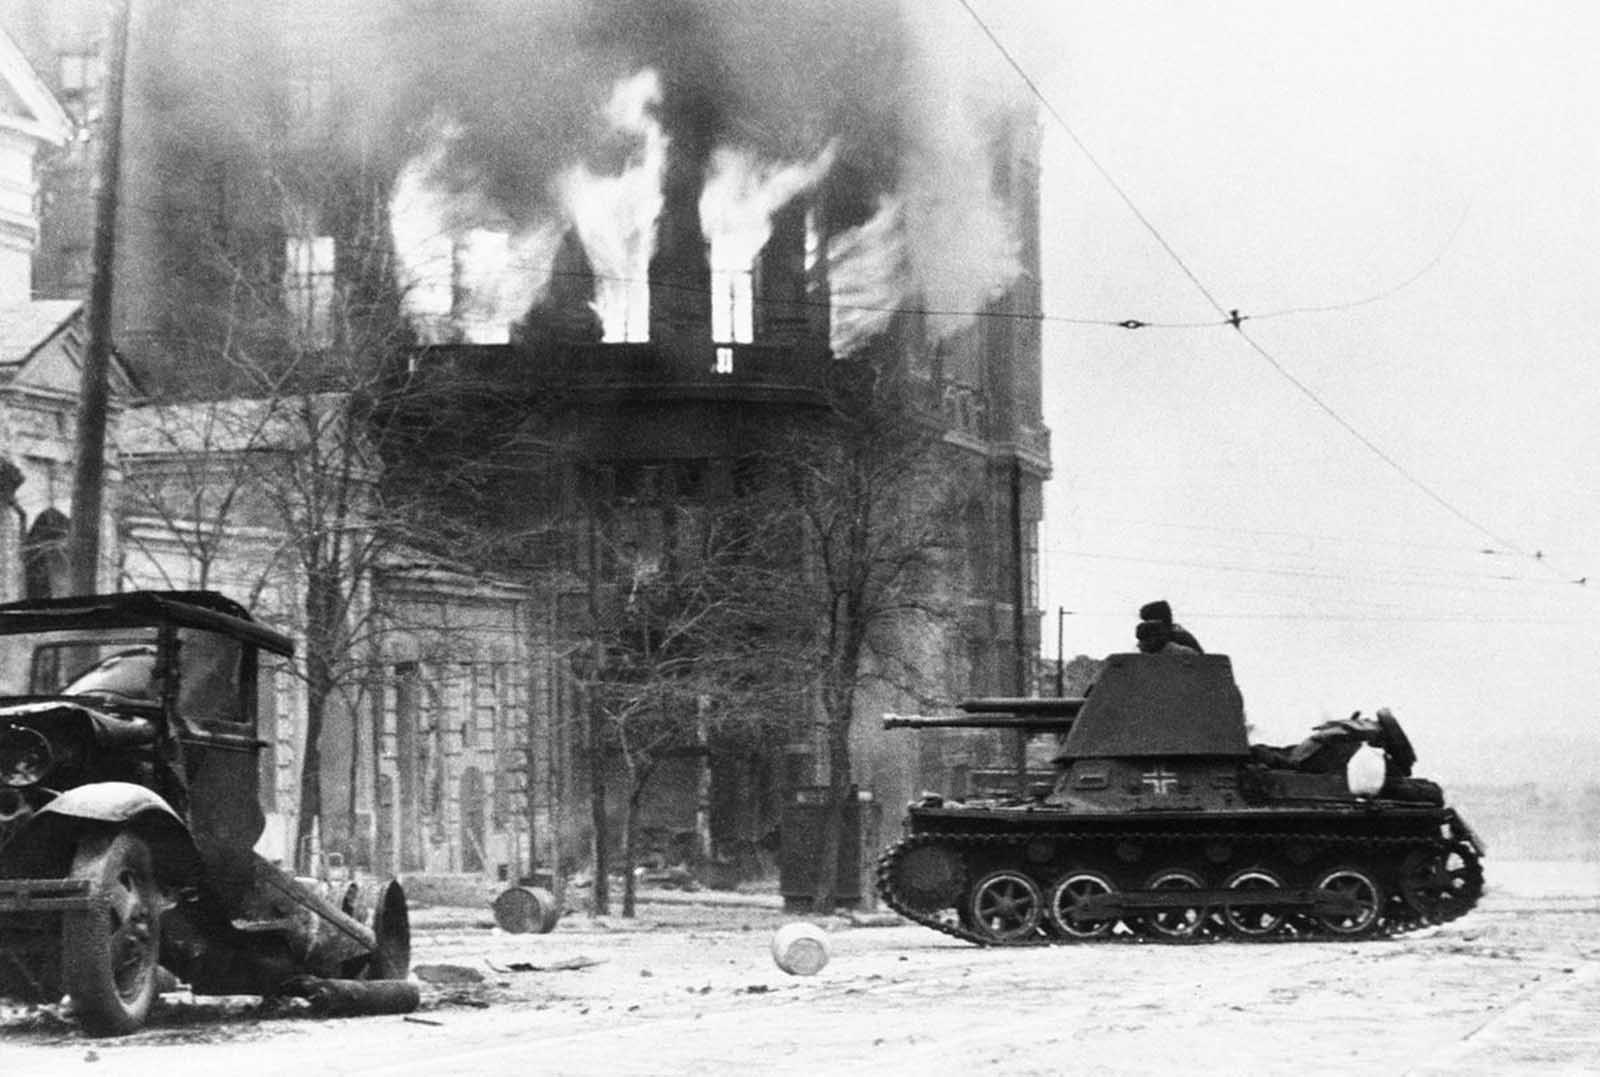 Burning houses, ruins and wrecks speak for the ferocity of the battle preceding this moment when German forces entered the stubbornly defended industrial center of Rostov on the lower Don River, in Russia, on November 22, 1941.